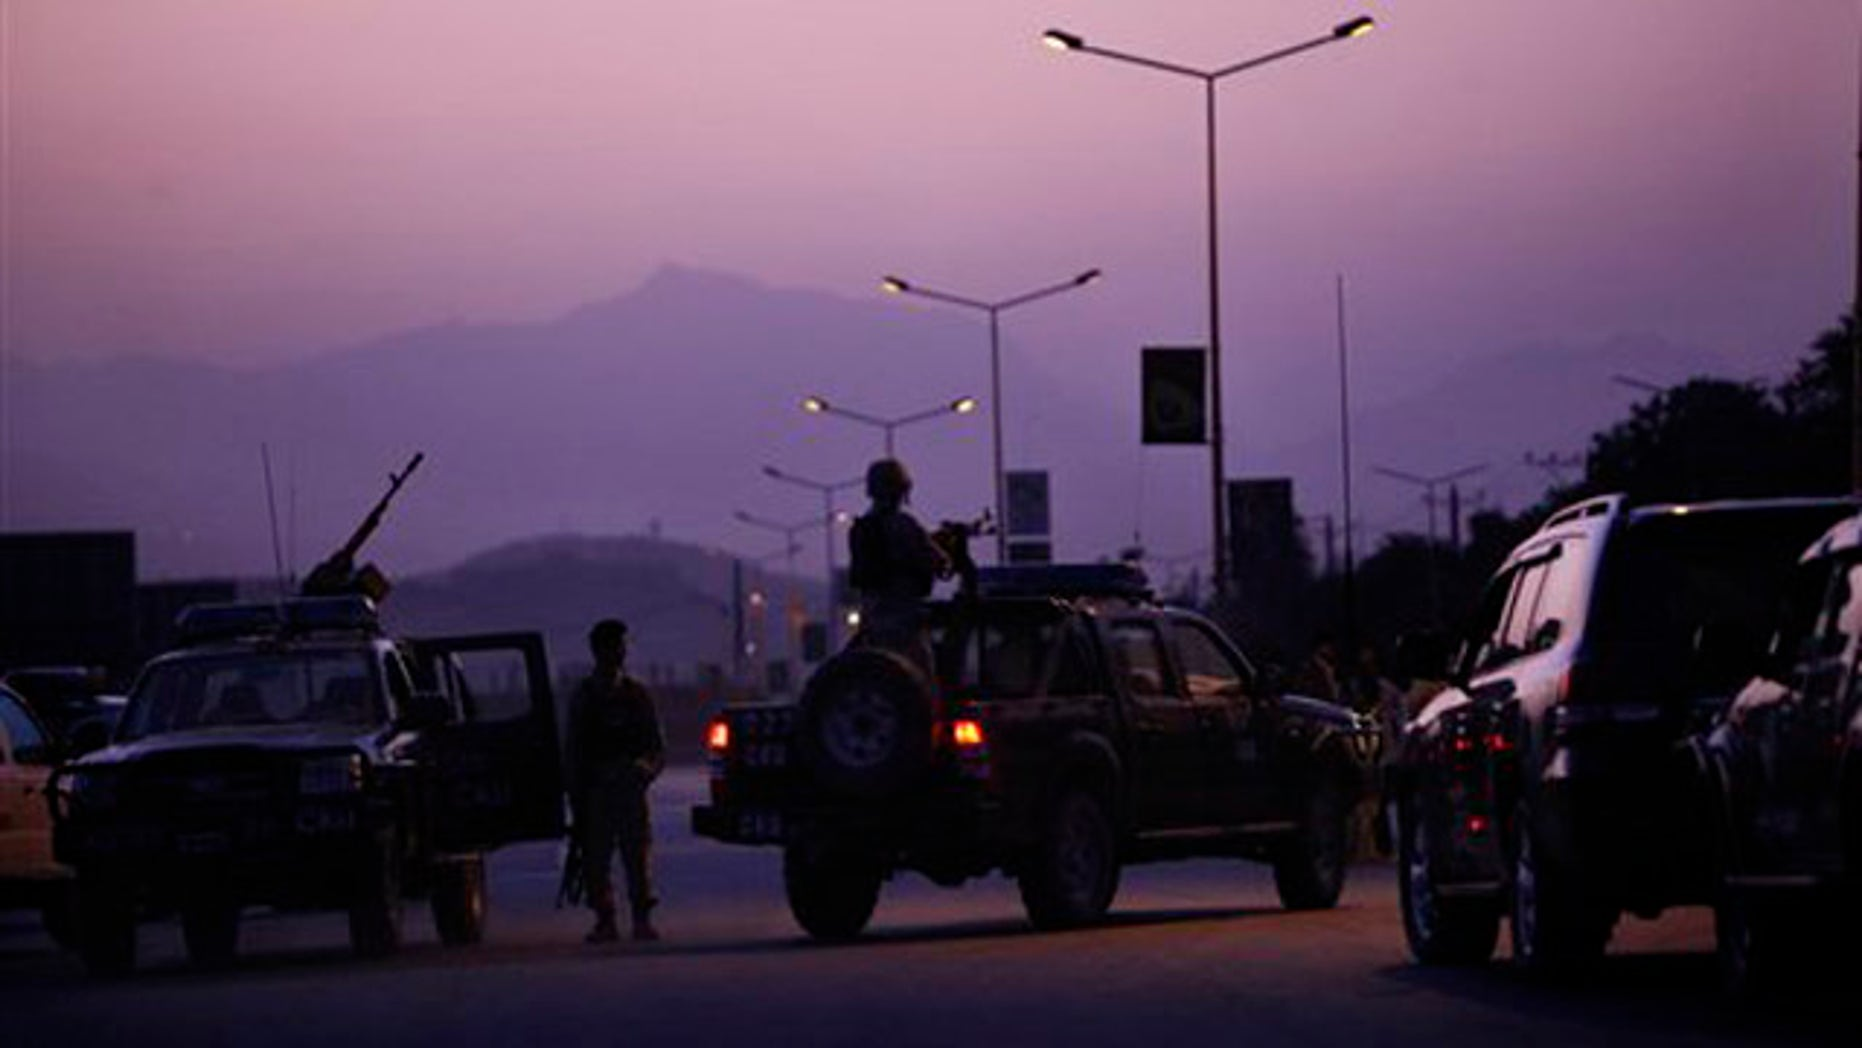 An Afghan army officer mans a heavy gun mounted to a vehicle at the entrance to the InterContinental hotel, which came under attack in Kabul, Afghanistan, June 29.